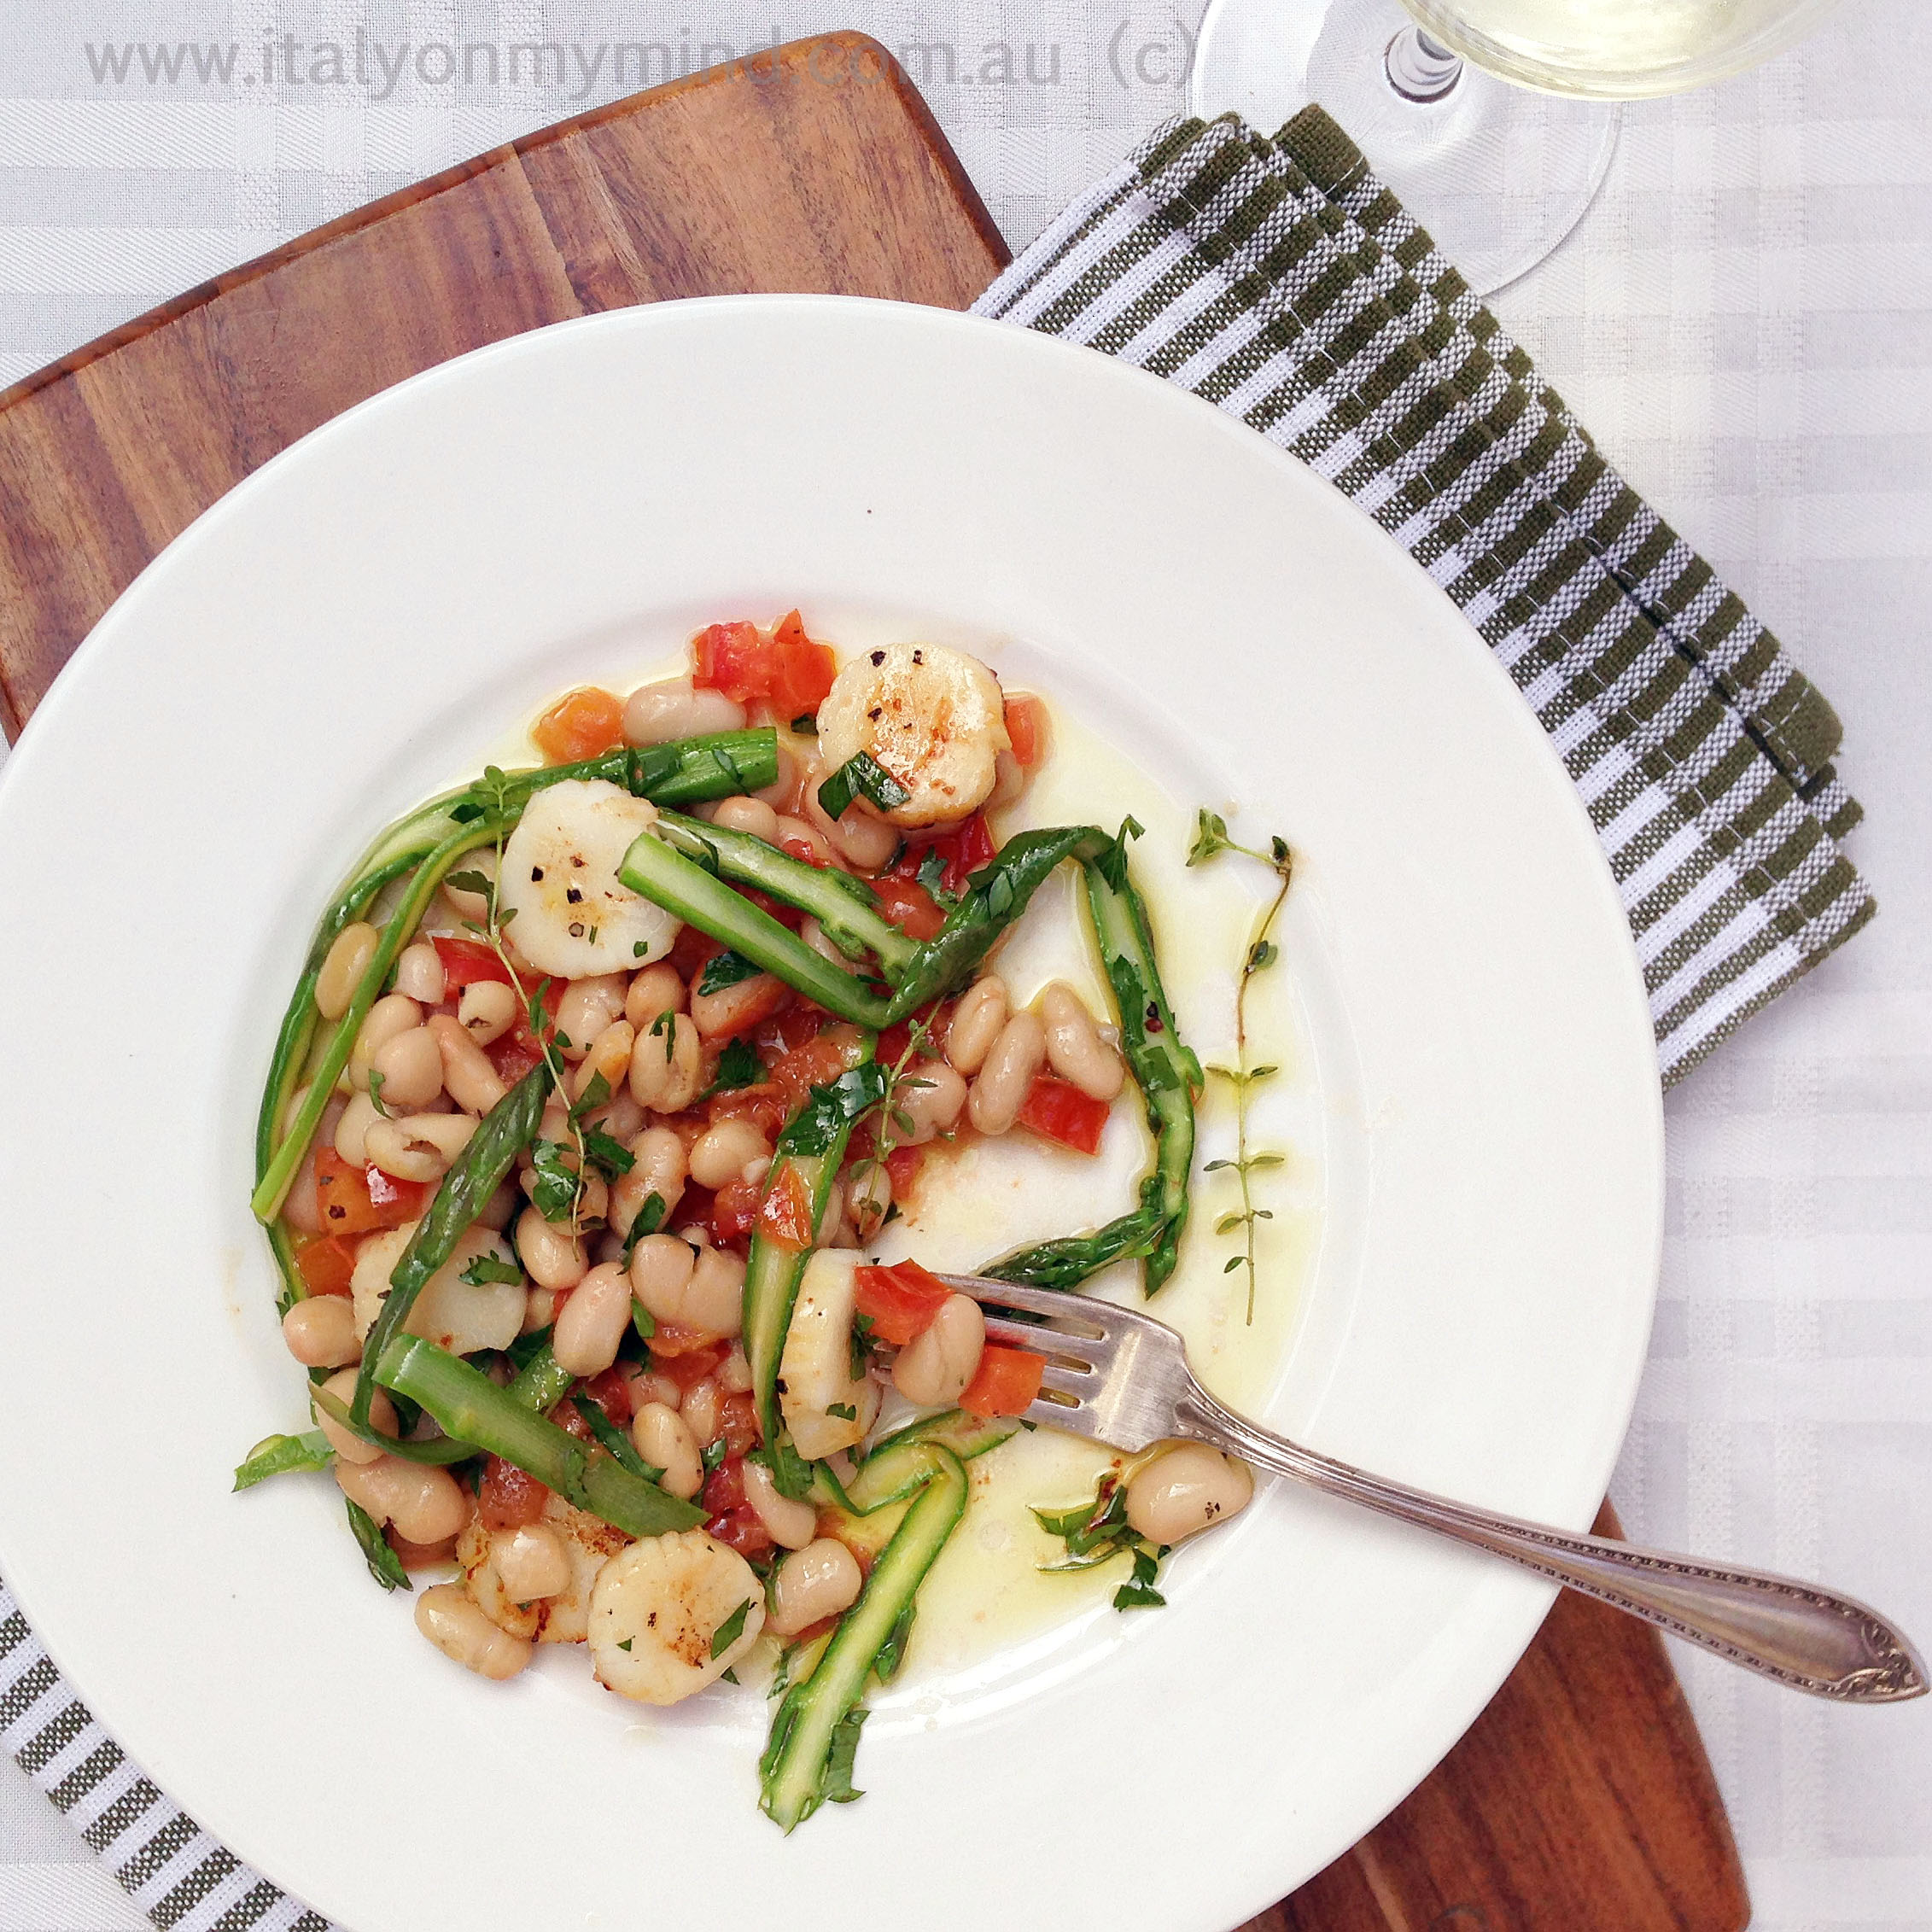 scallop and asparagus salad